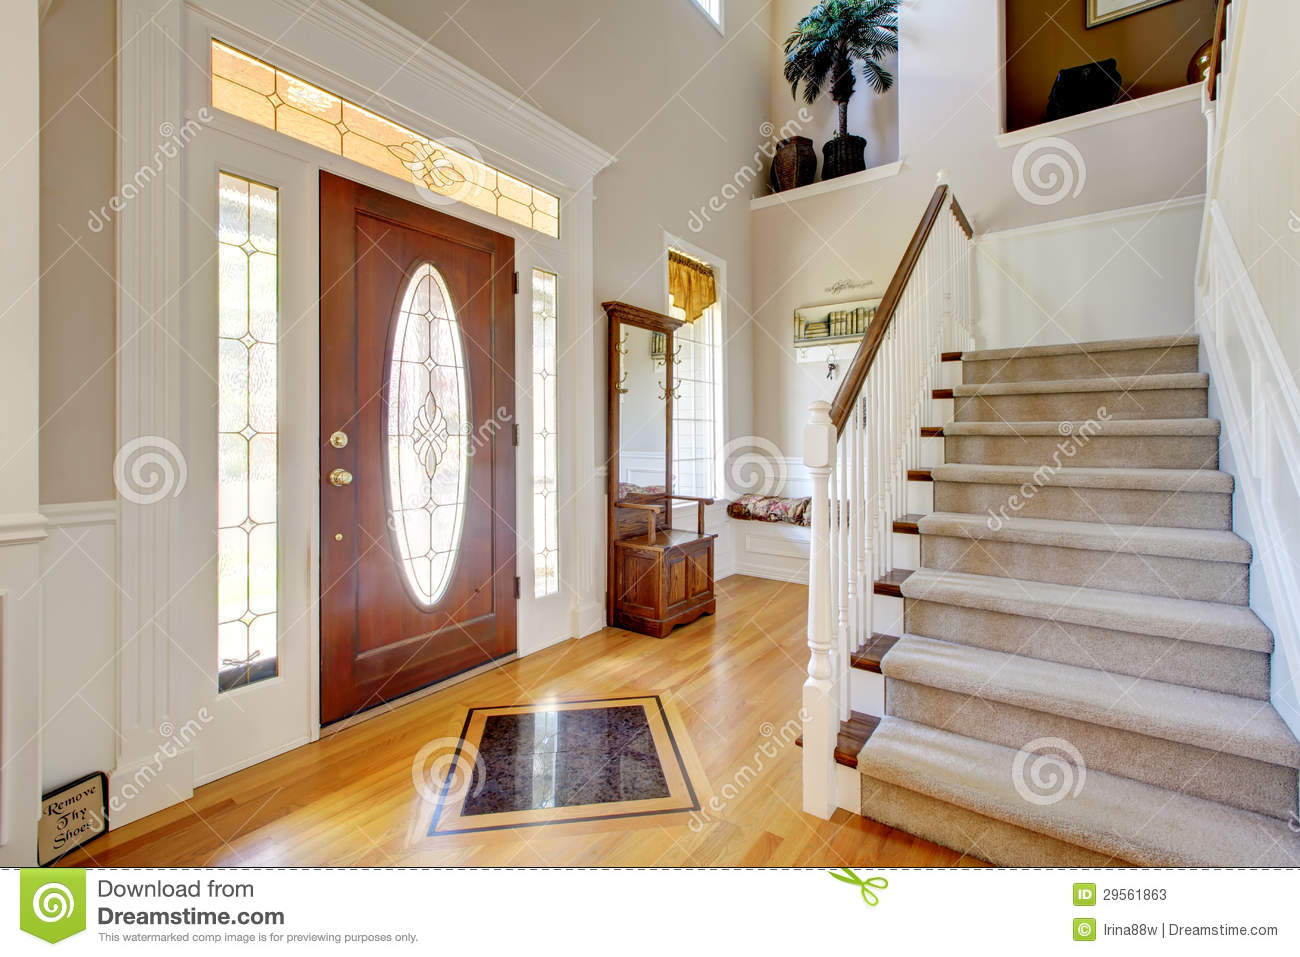 Classic american home entrance interior with staircase - Peinture montee escalier ...